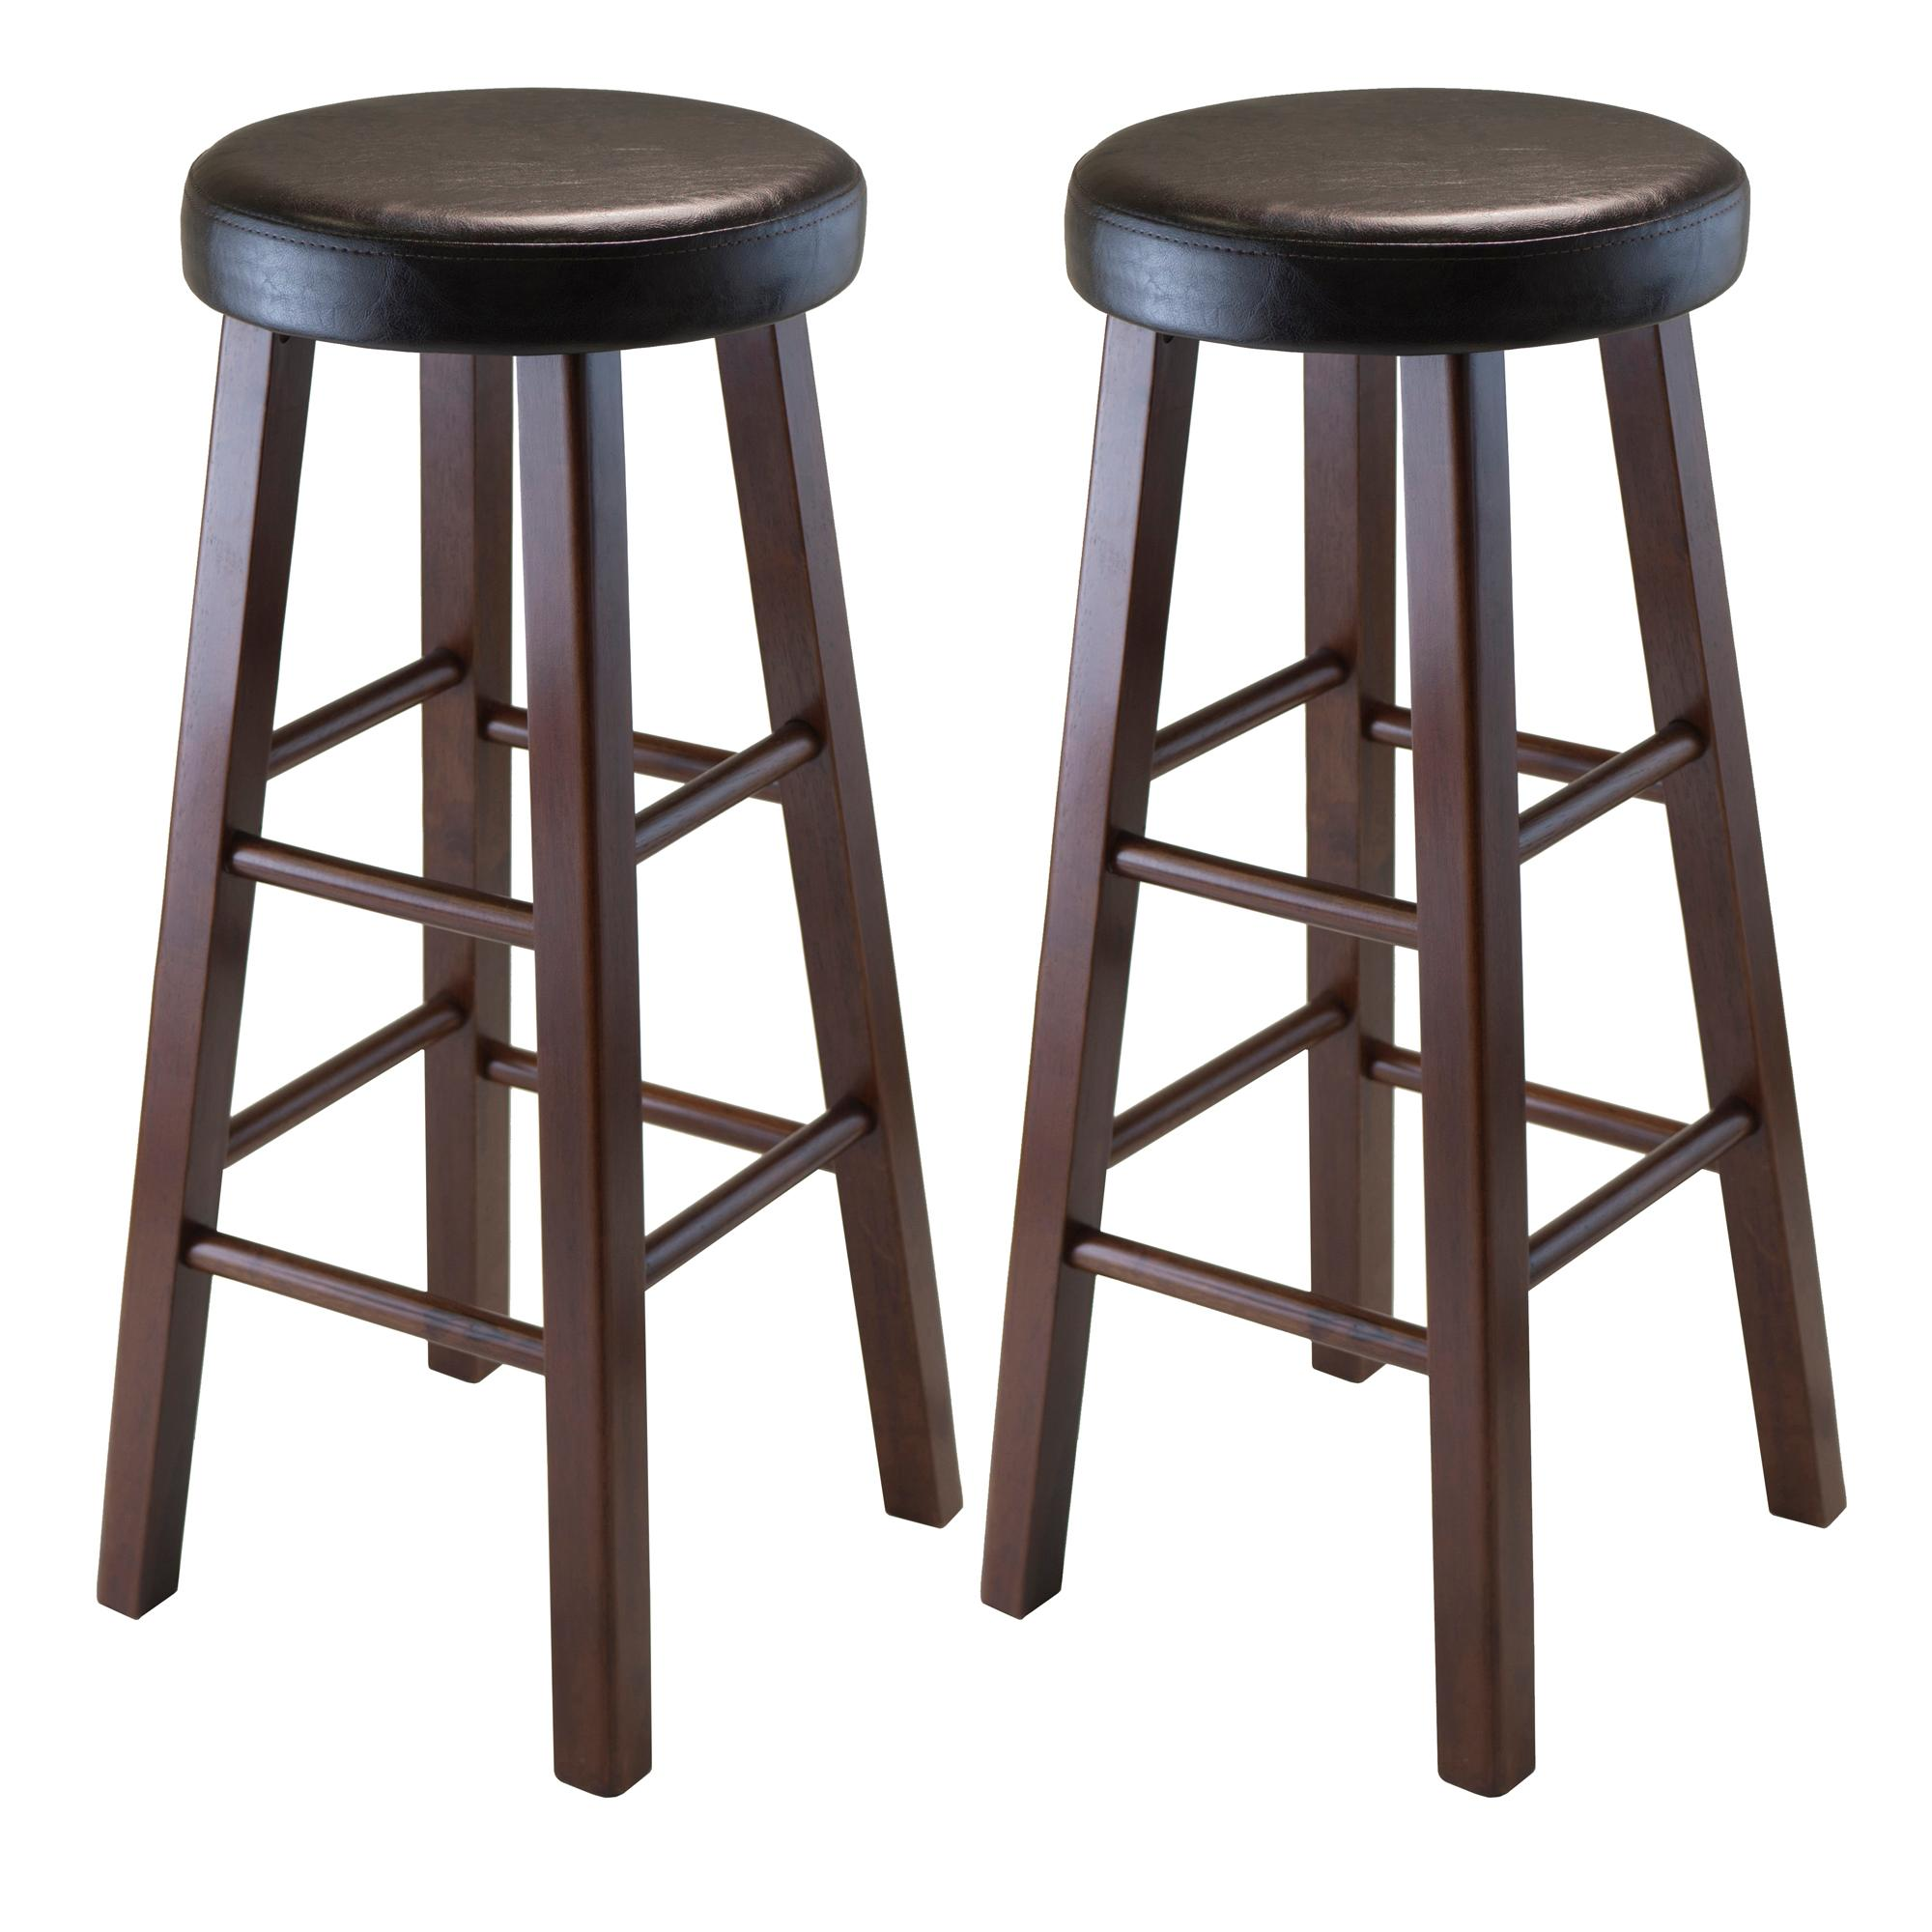 Amazon.com: Winsome Wood Marta Assembled Round Bar Stool with PU ...